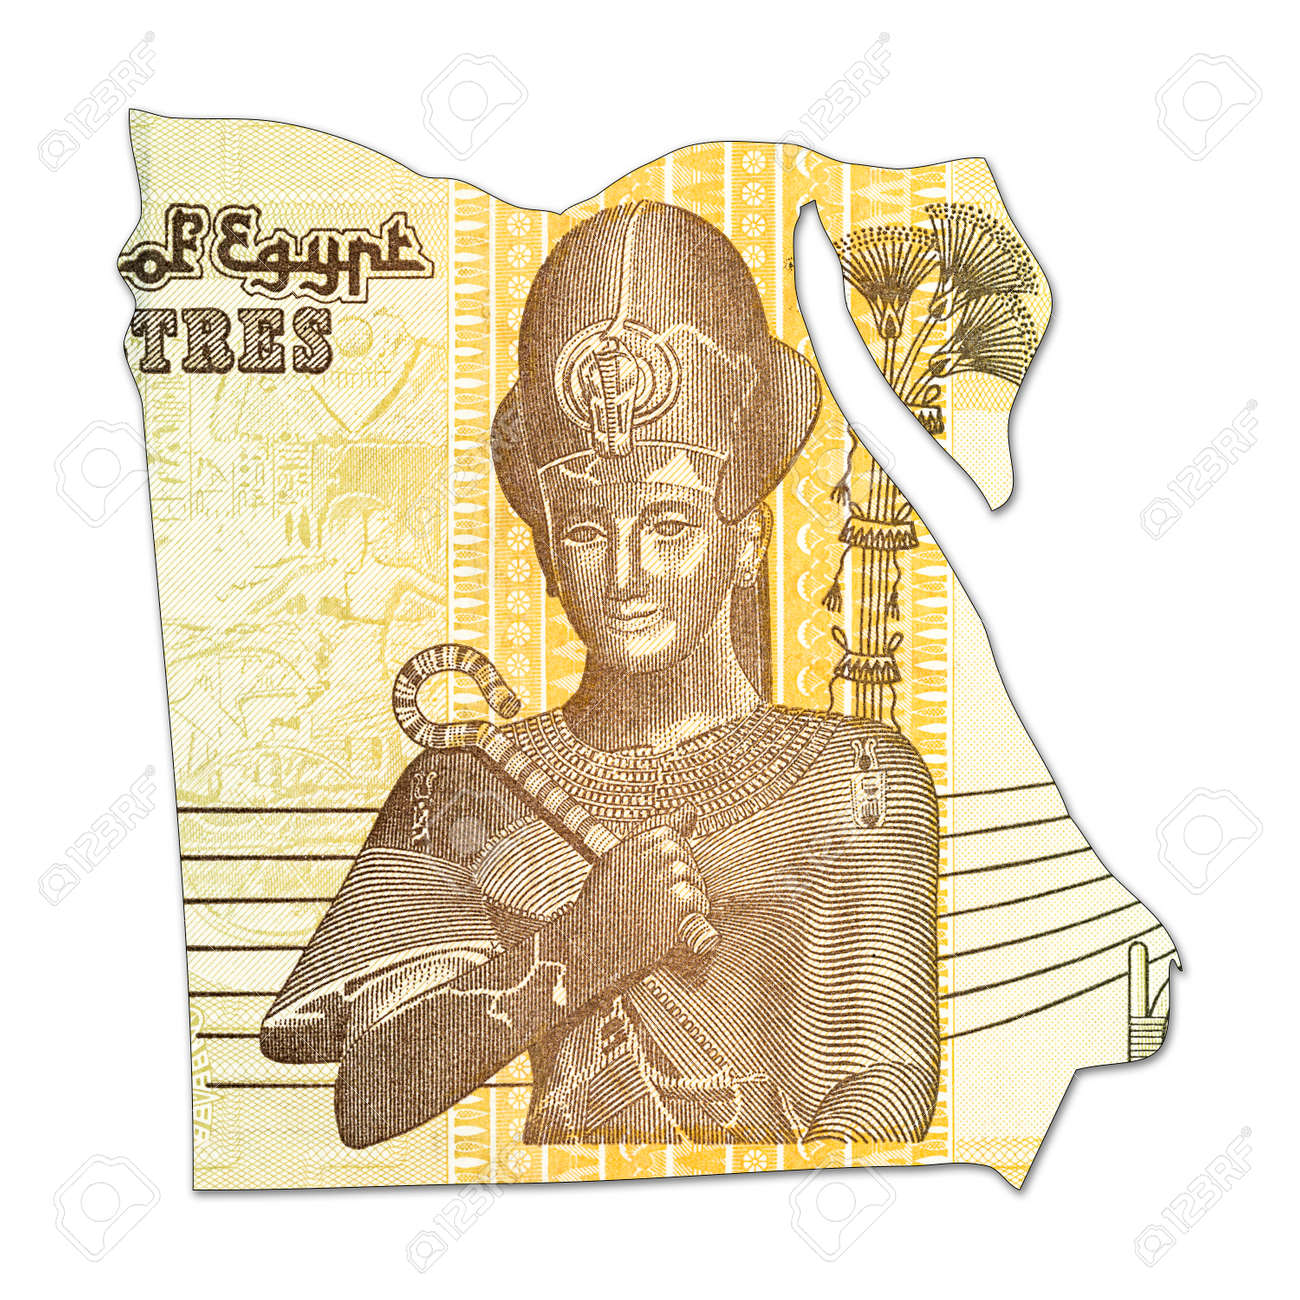 50 egyptian pound bank note in shape of egypt stock photo picture 50 egyptian pound bank note in shape of egypt stock photo 71586868 biocorpaavc Images